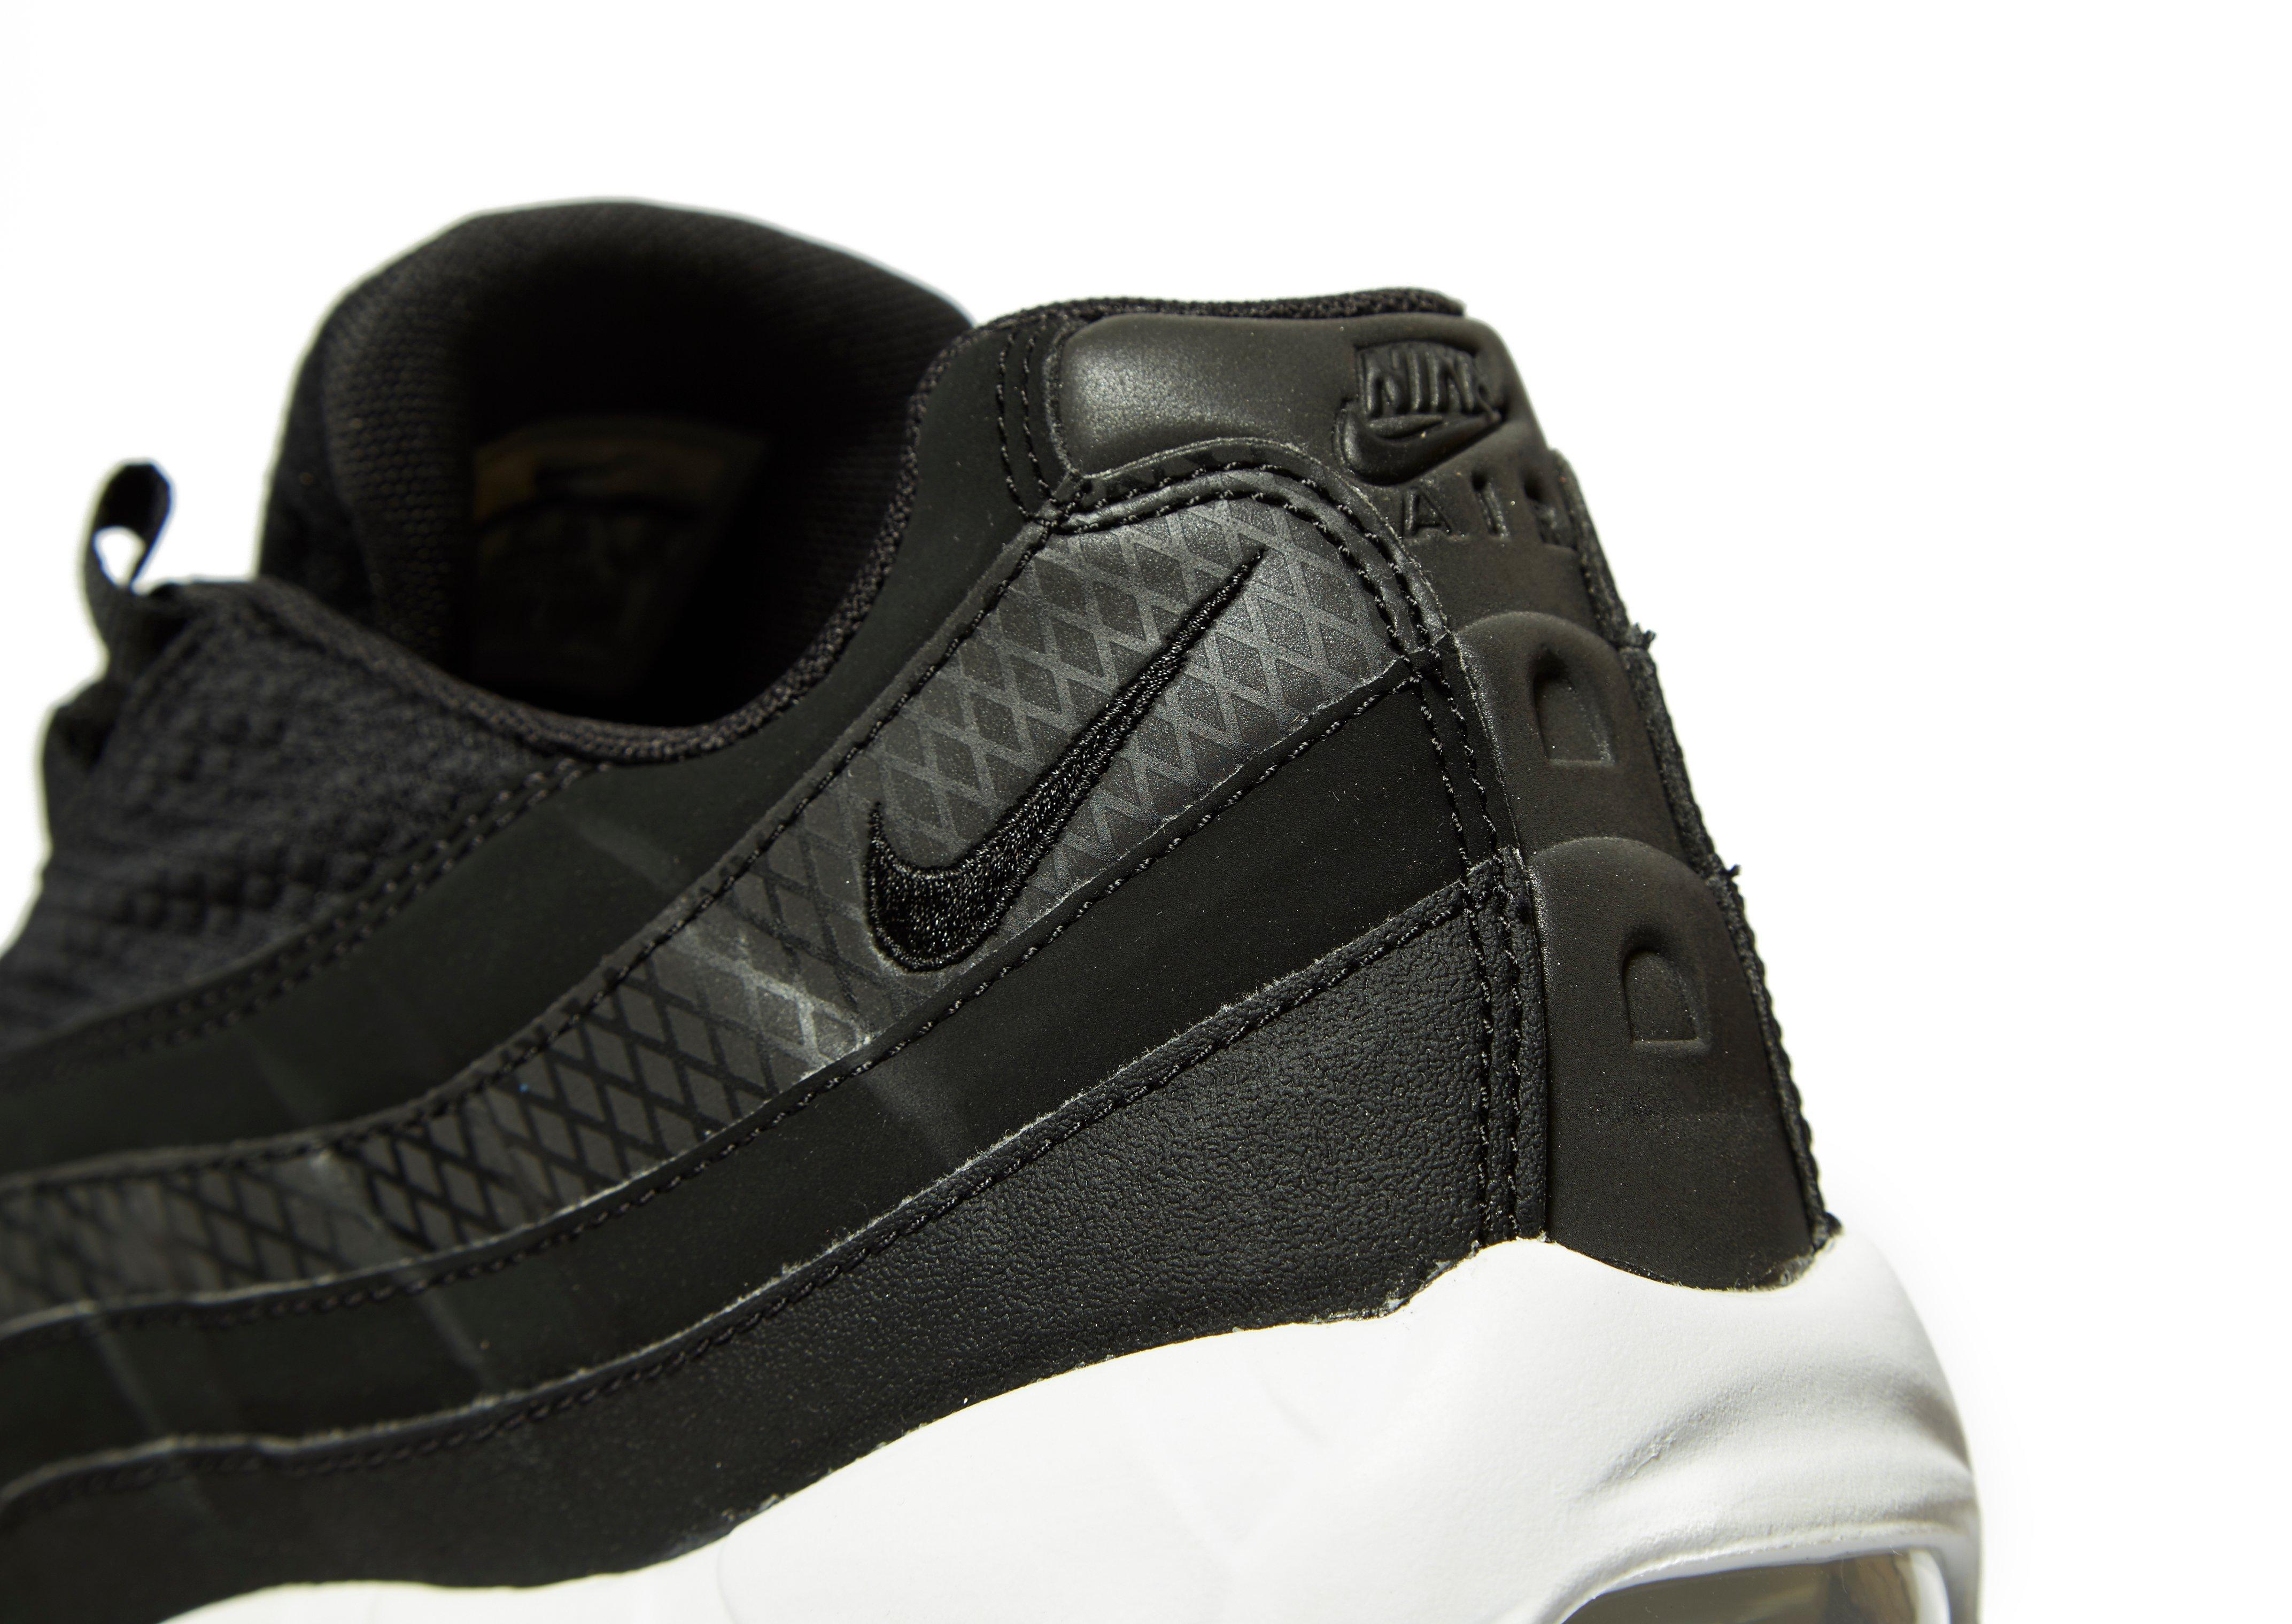 Nike Leather Air Max 95 Se in Black/White (Black) for Men